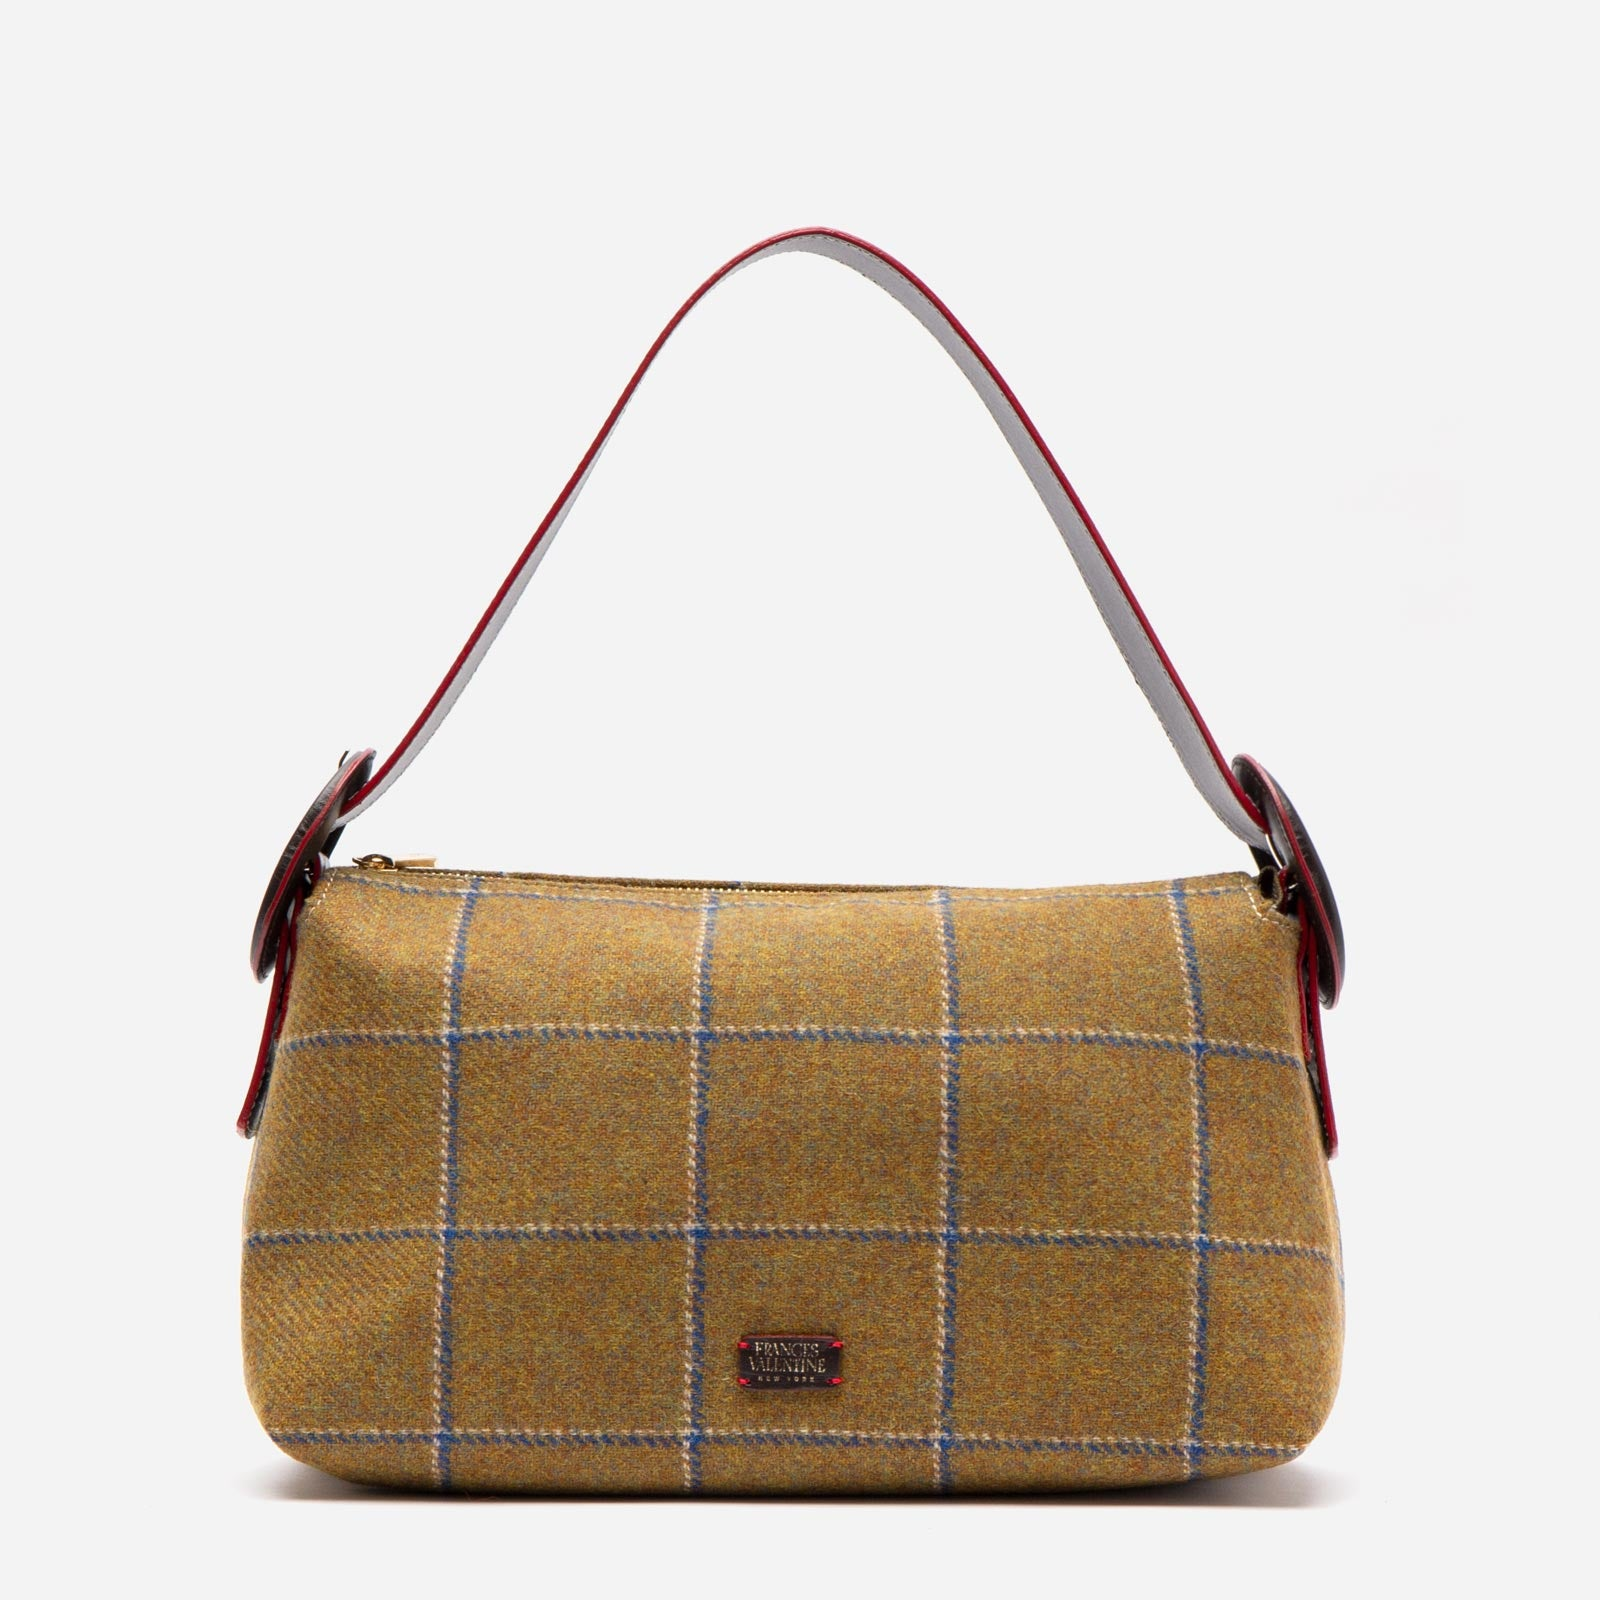 Buckle Hobo Wool Plaid Olive Navy - Frances Valentine